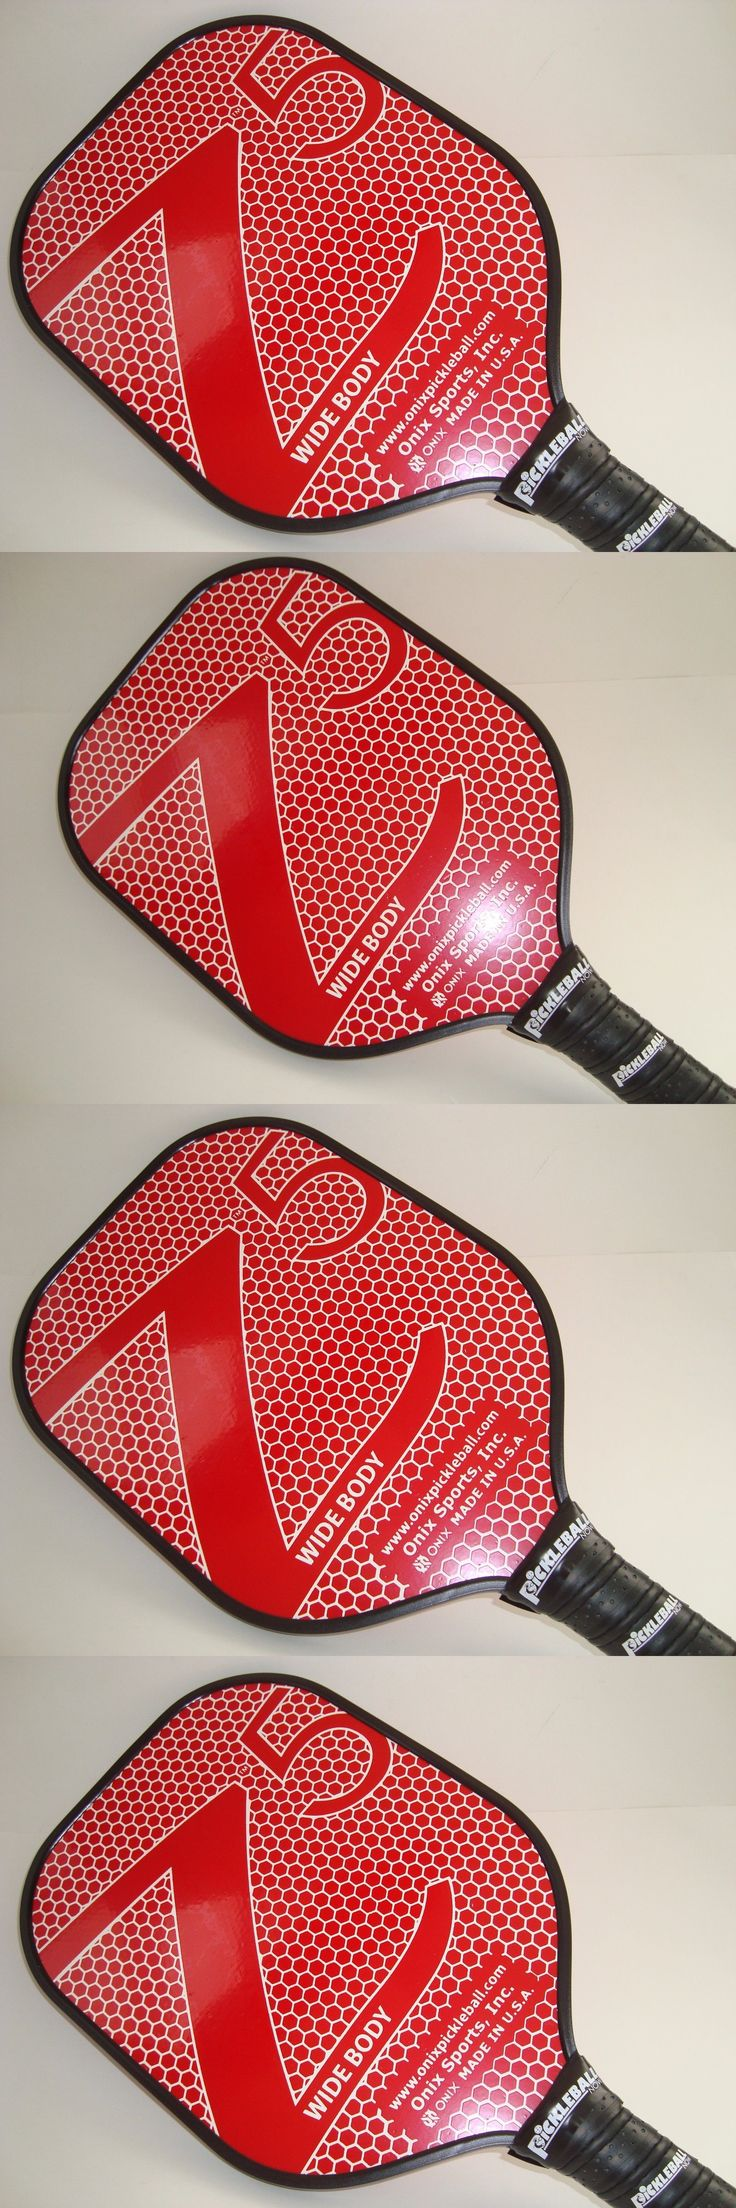 Other Tennis and Racquet Sports 159135: New Onix Z5 Composite Pickleball Paddle Nomex Core Strong Light Red -> BUY IT NOW ONLY: $79.99 on eBay!